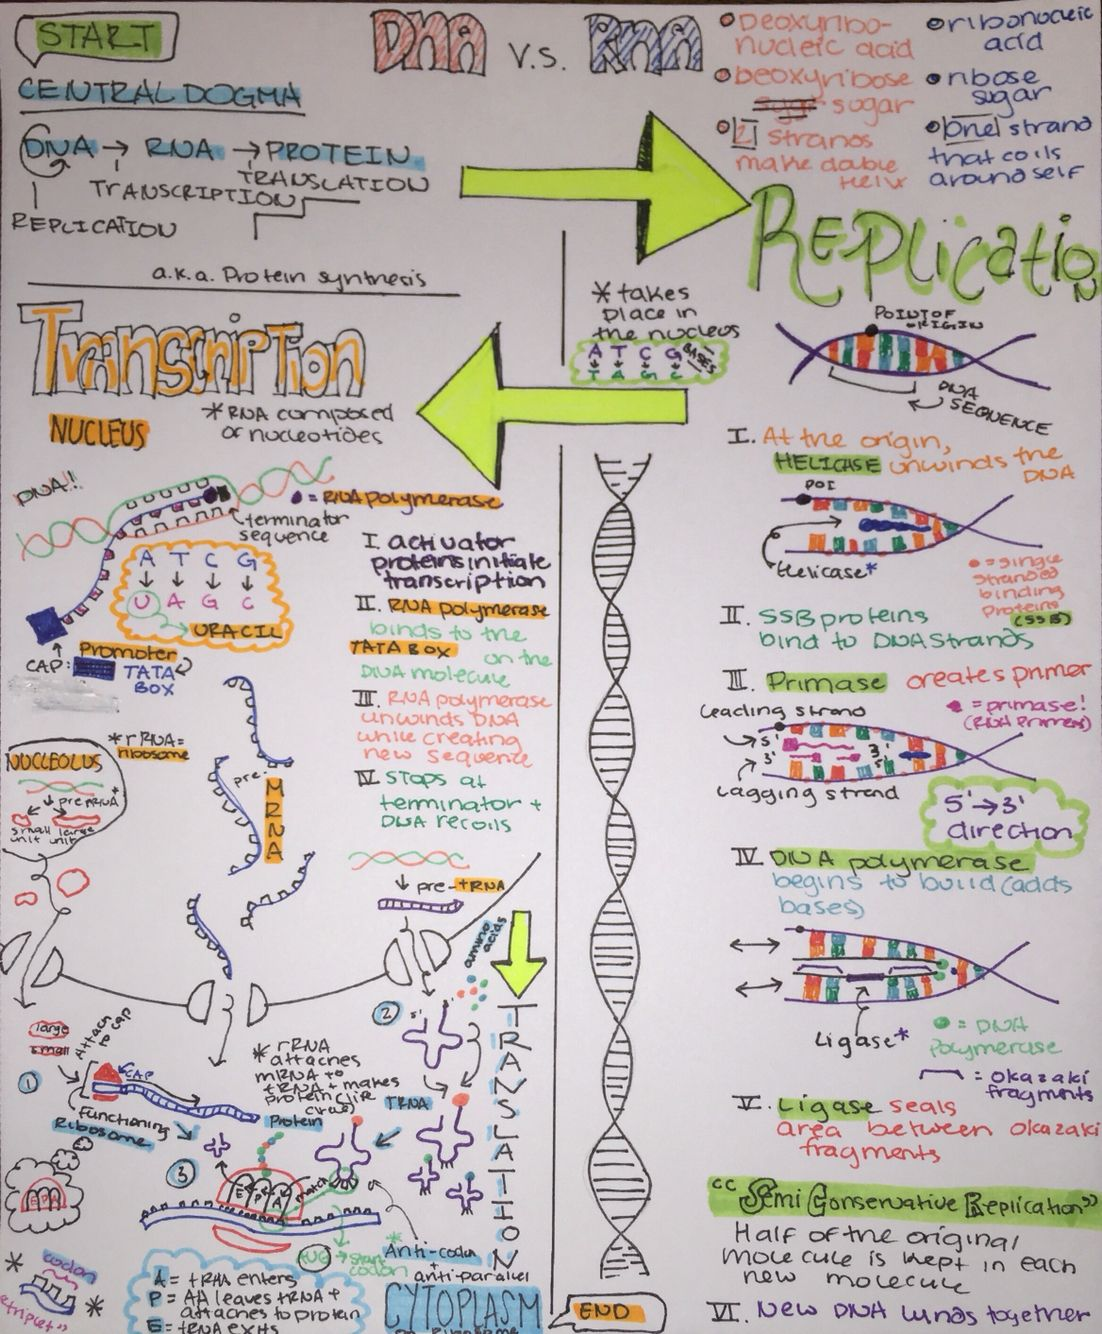 Notes On Central Dogma